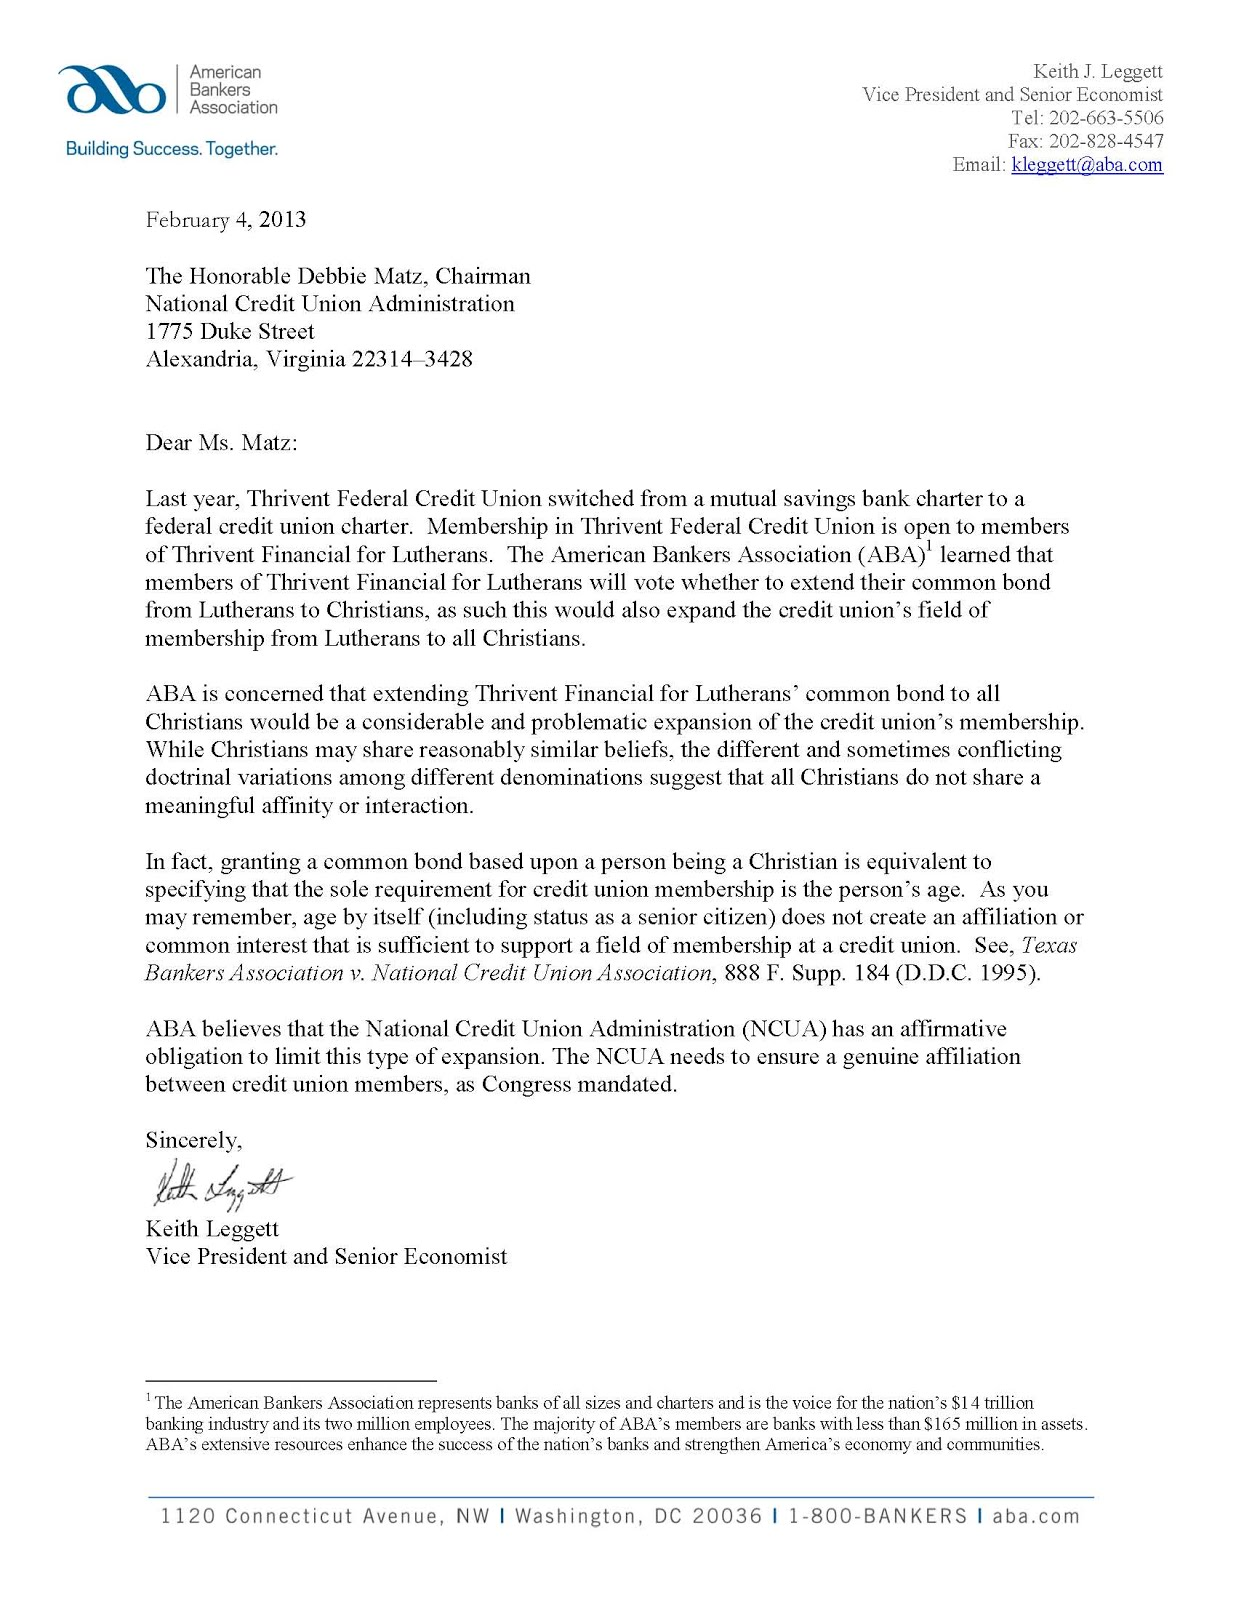 Keith Leggett's Credit Union Watch: Letter to NCUA on ...